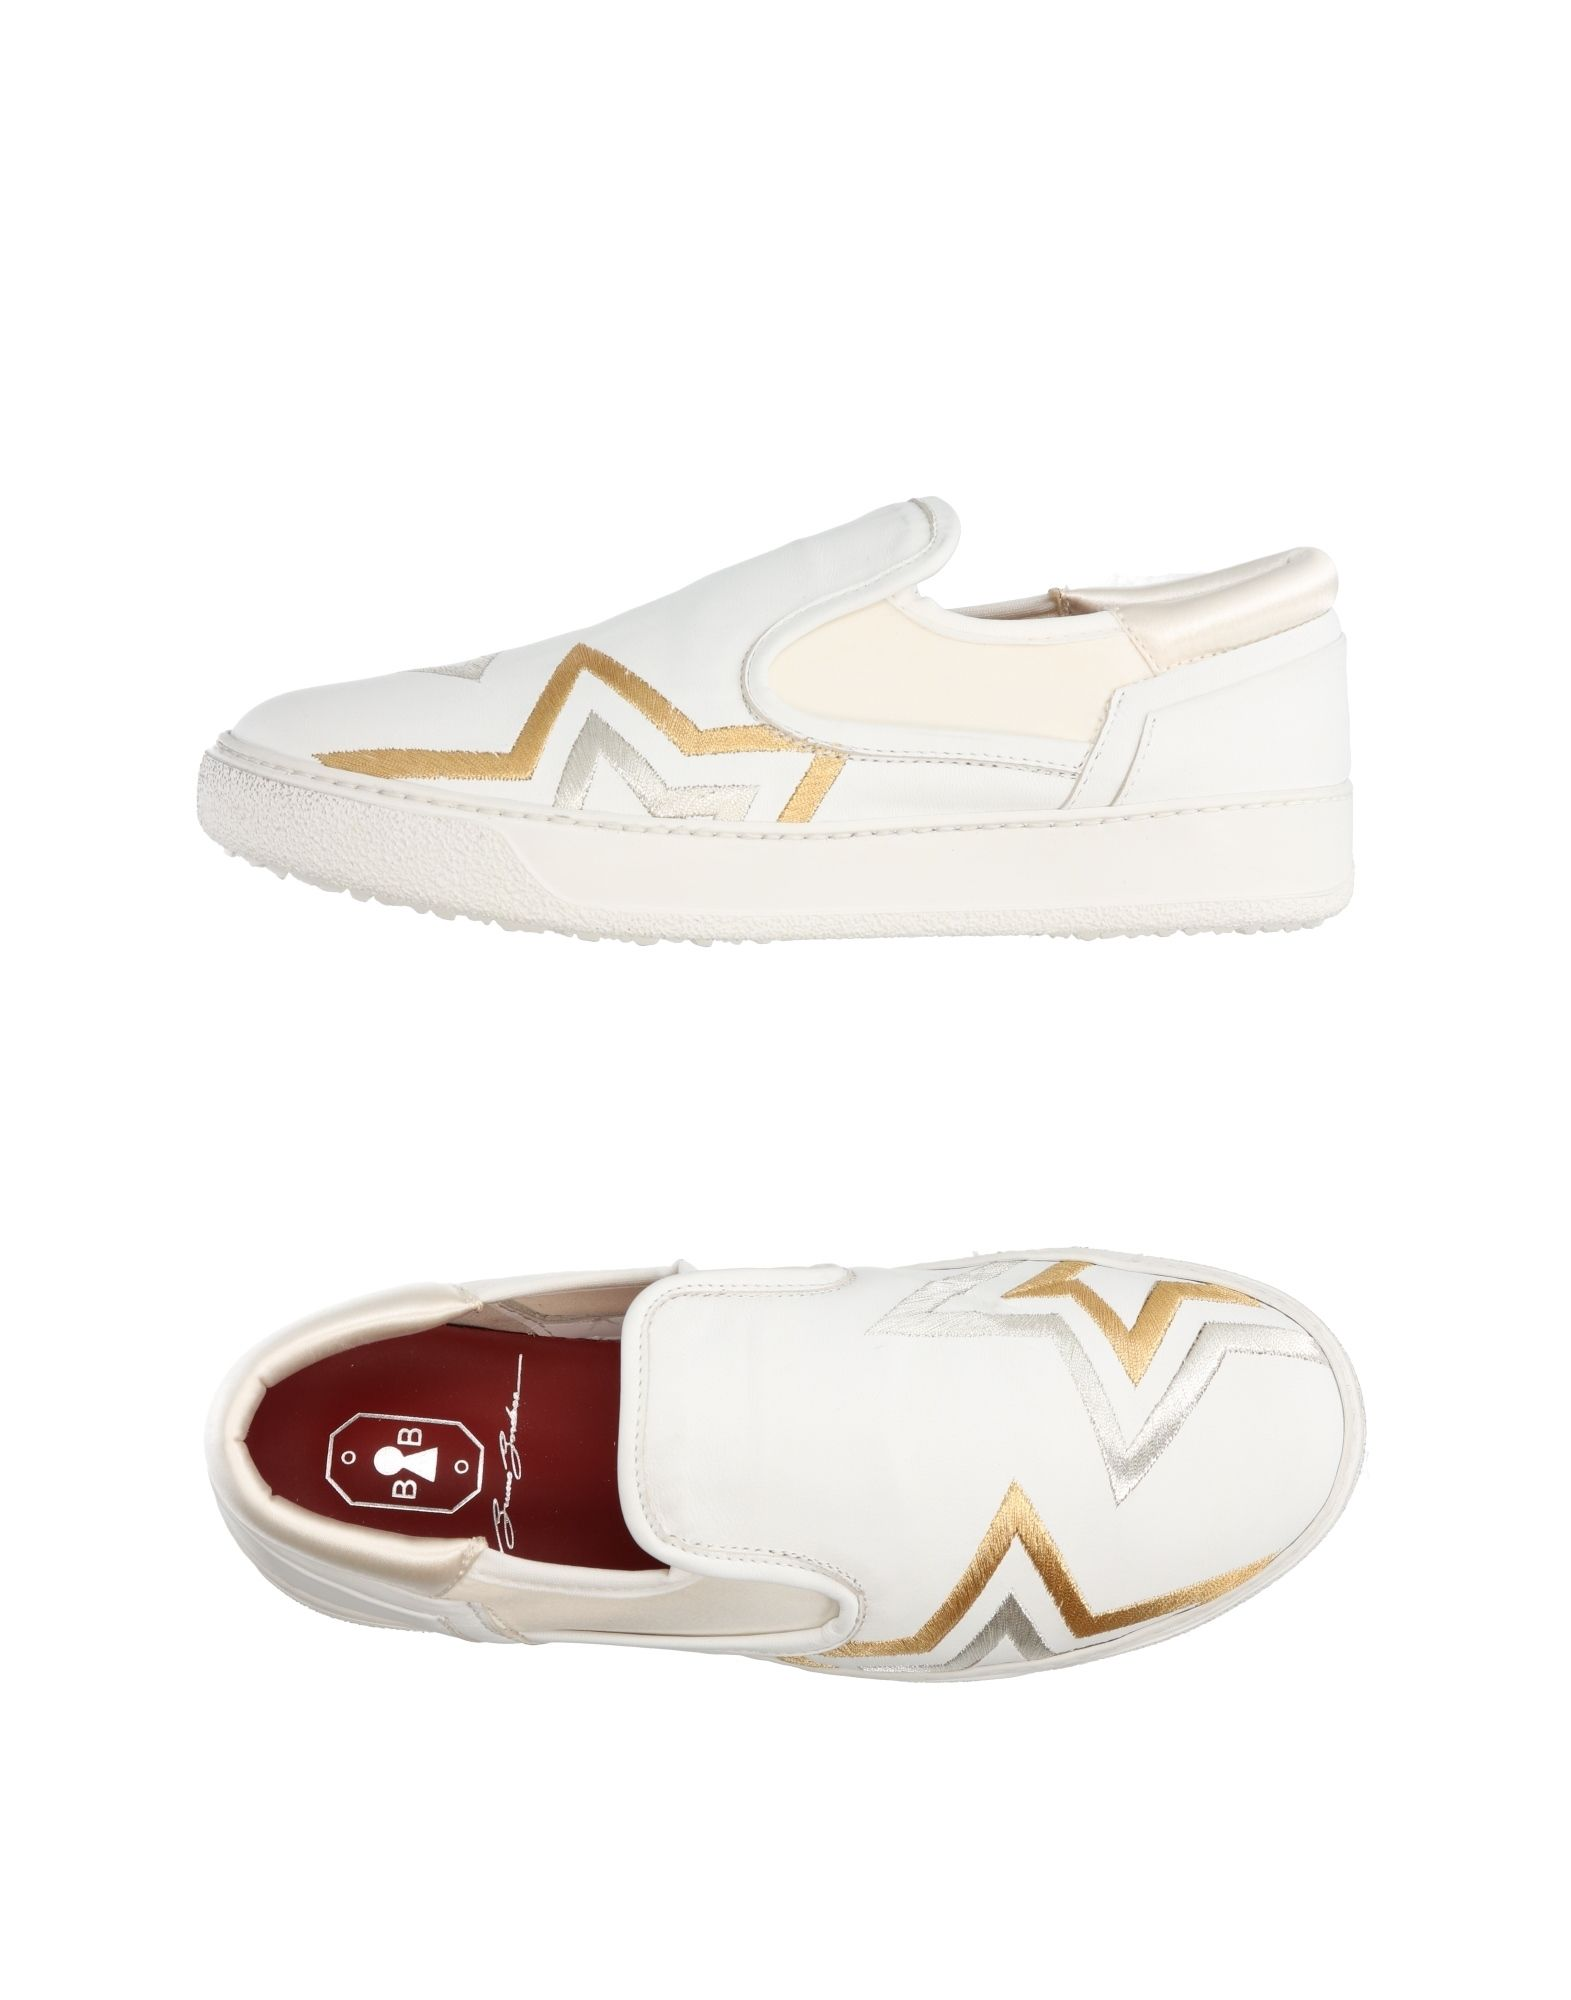 BRUNO BORDESE Sneakers in White